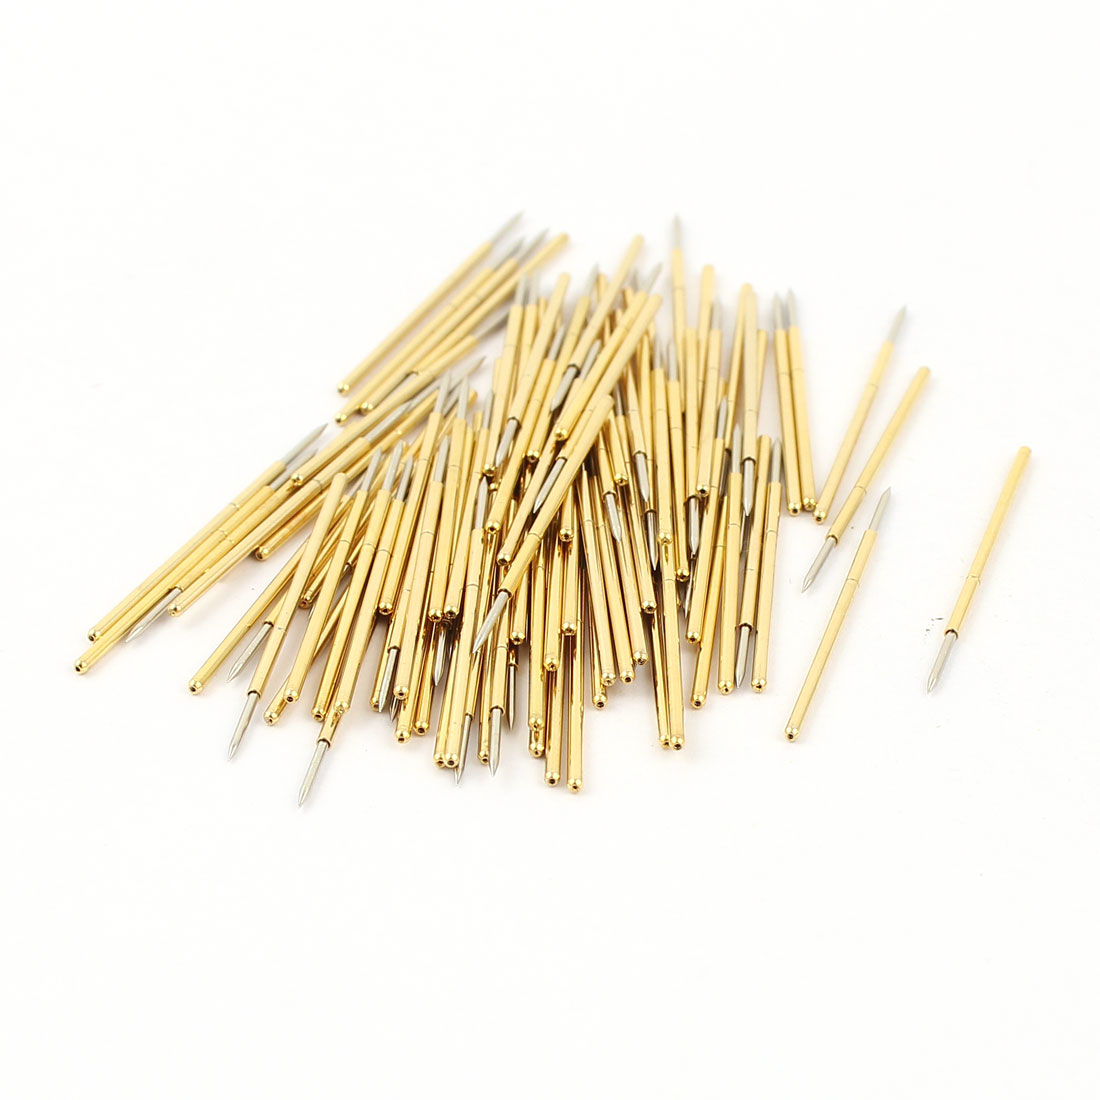 100 Pcs PM75-B1 0.74mm Spear Tip Spring Testing Probes Pin 27.8mm Length